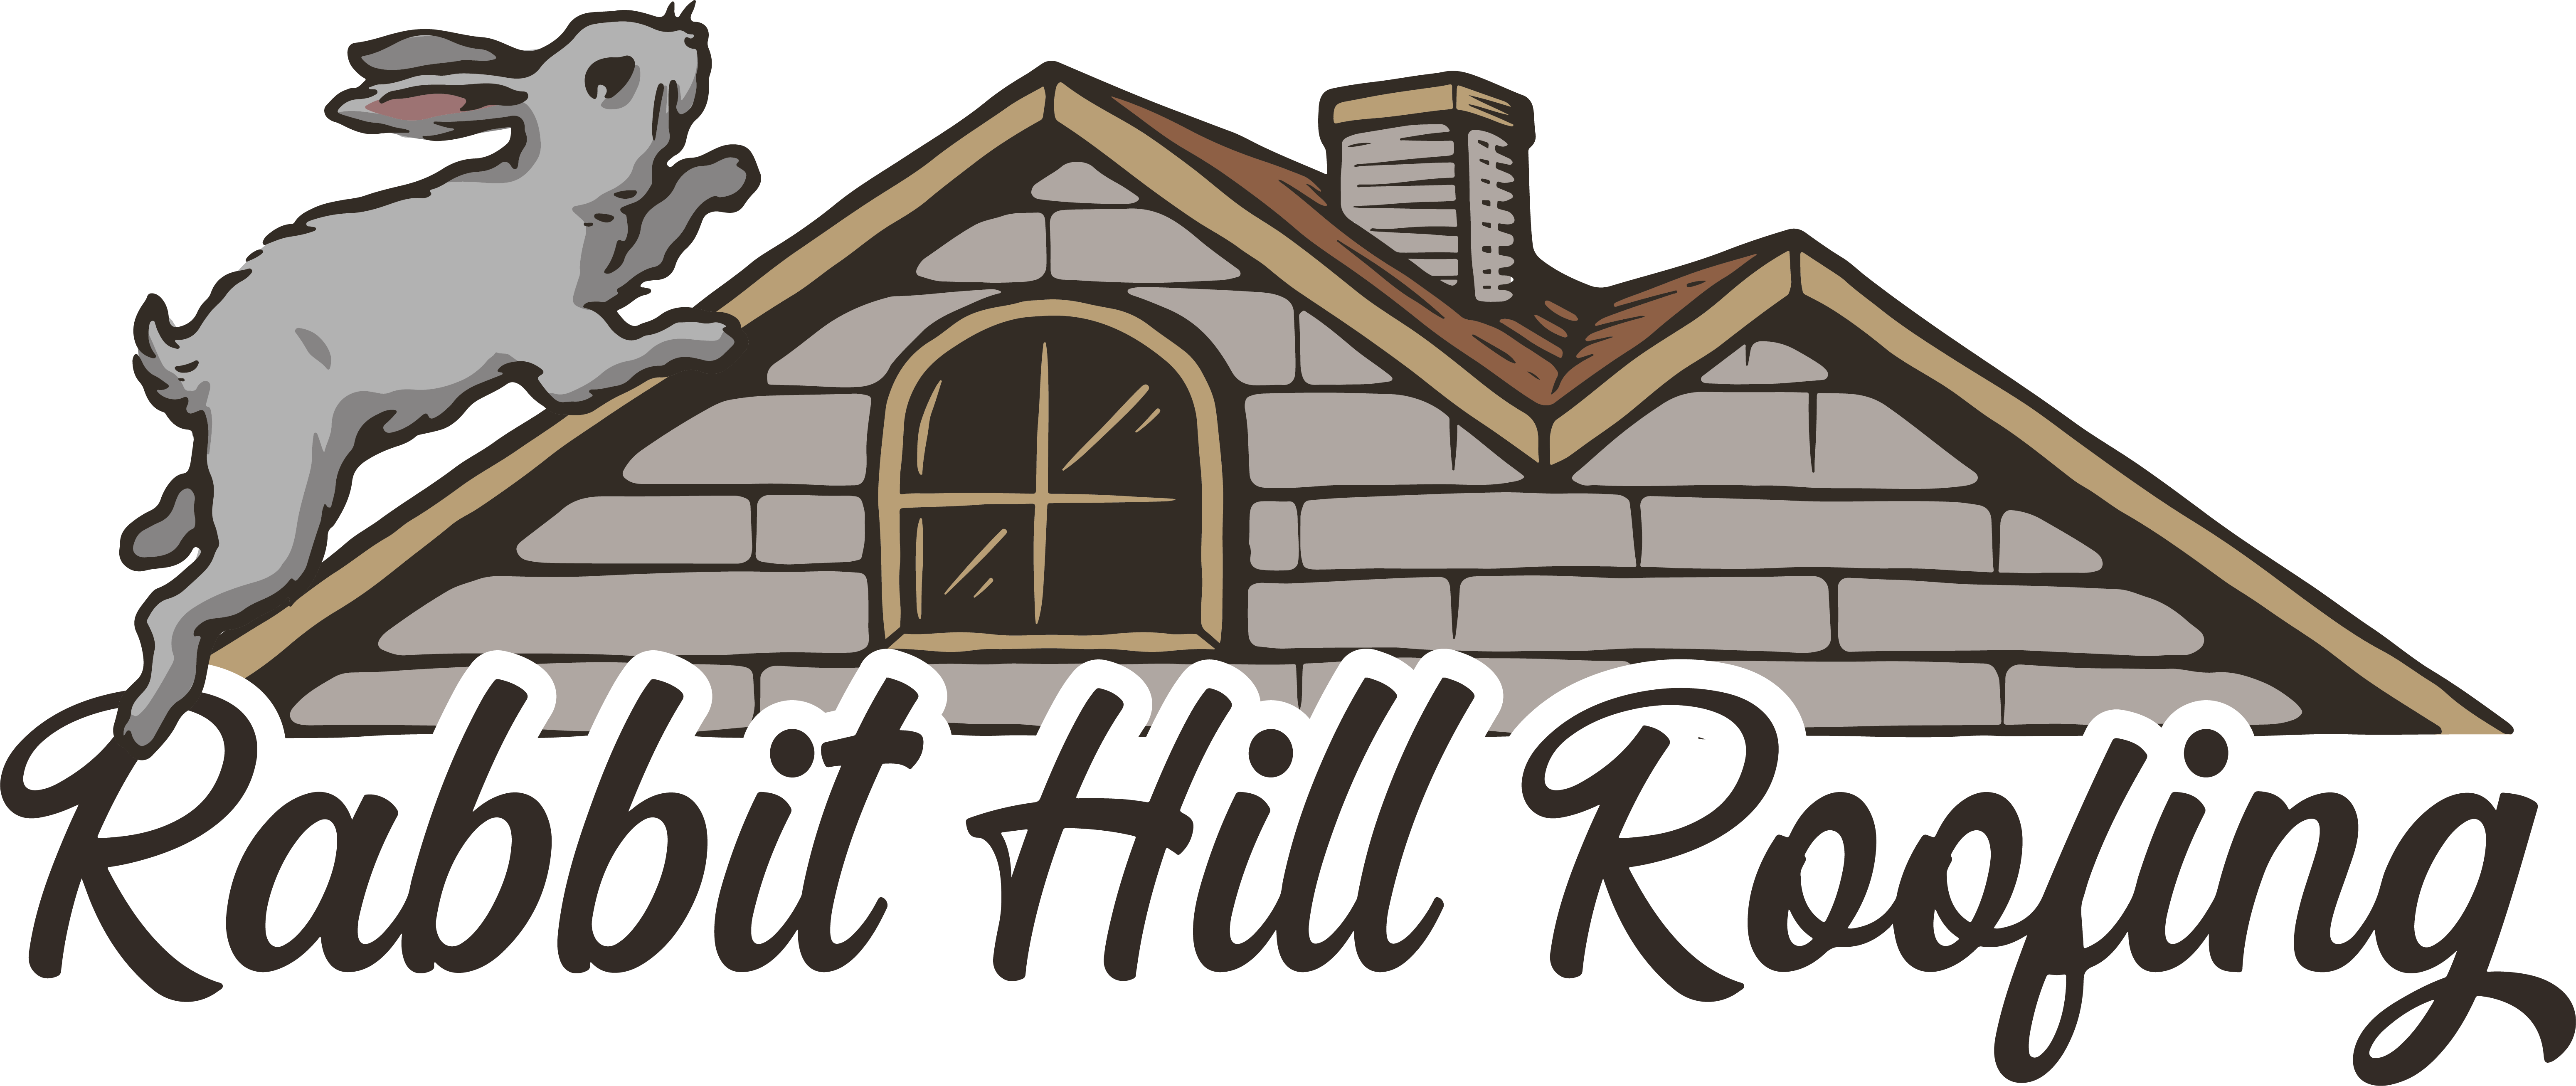 Rabbit Hill Roofing York PA